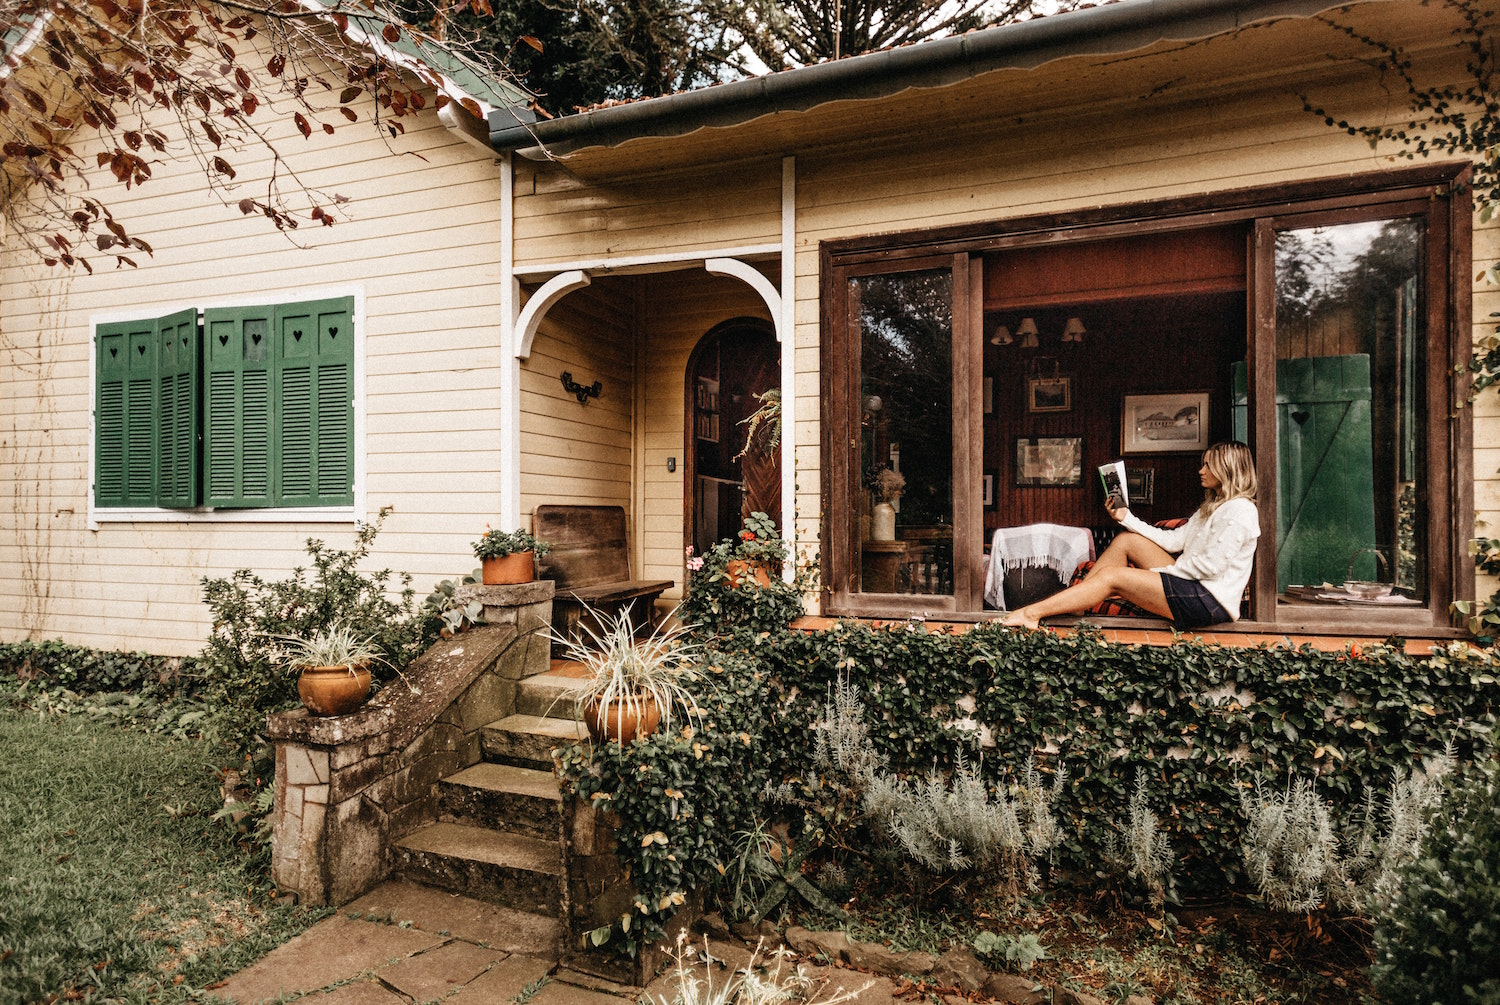 Woman sitting on a house porch alone, reading a book